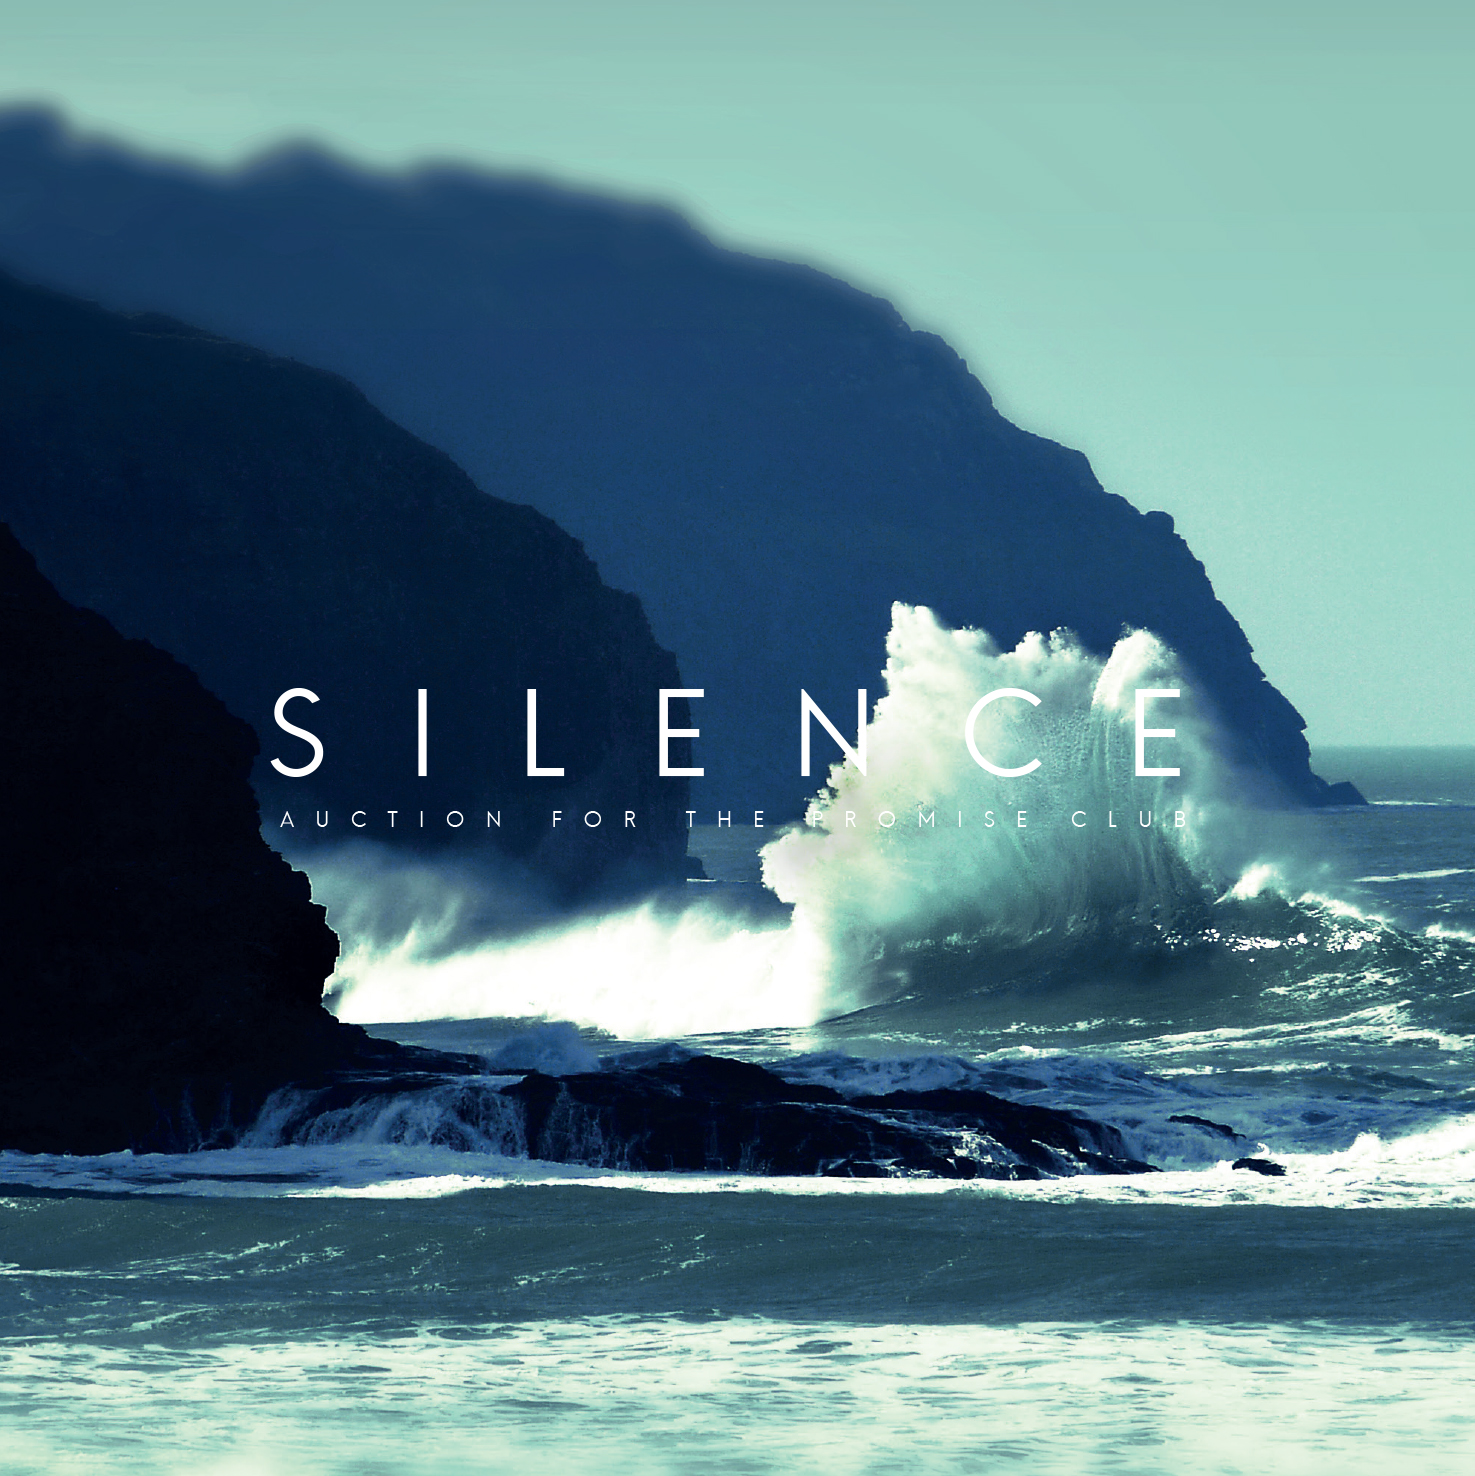 Artwork for Silence by Auction For The Promise Club